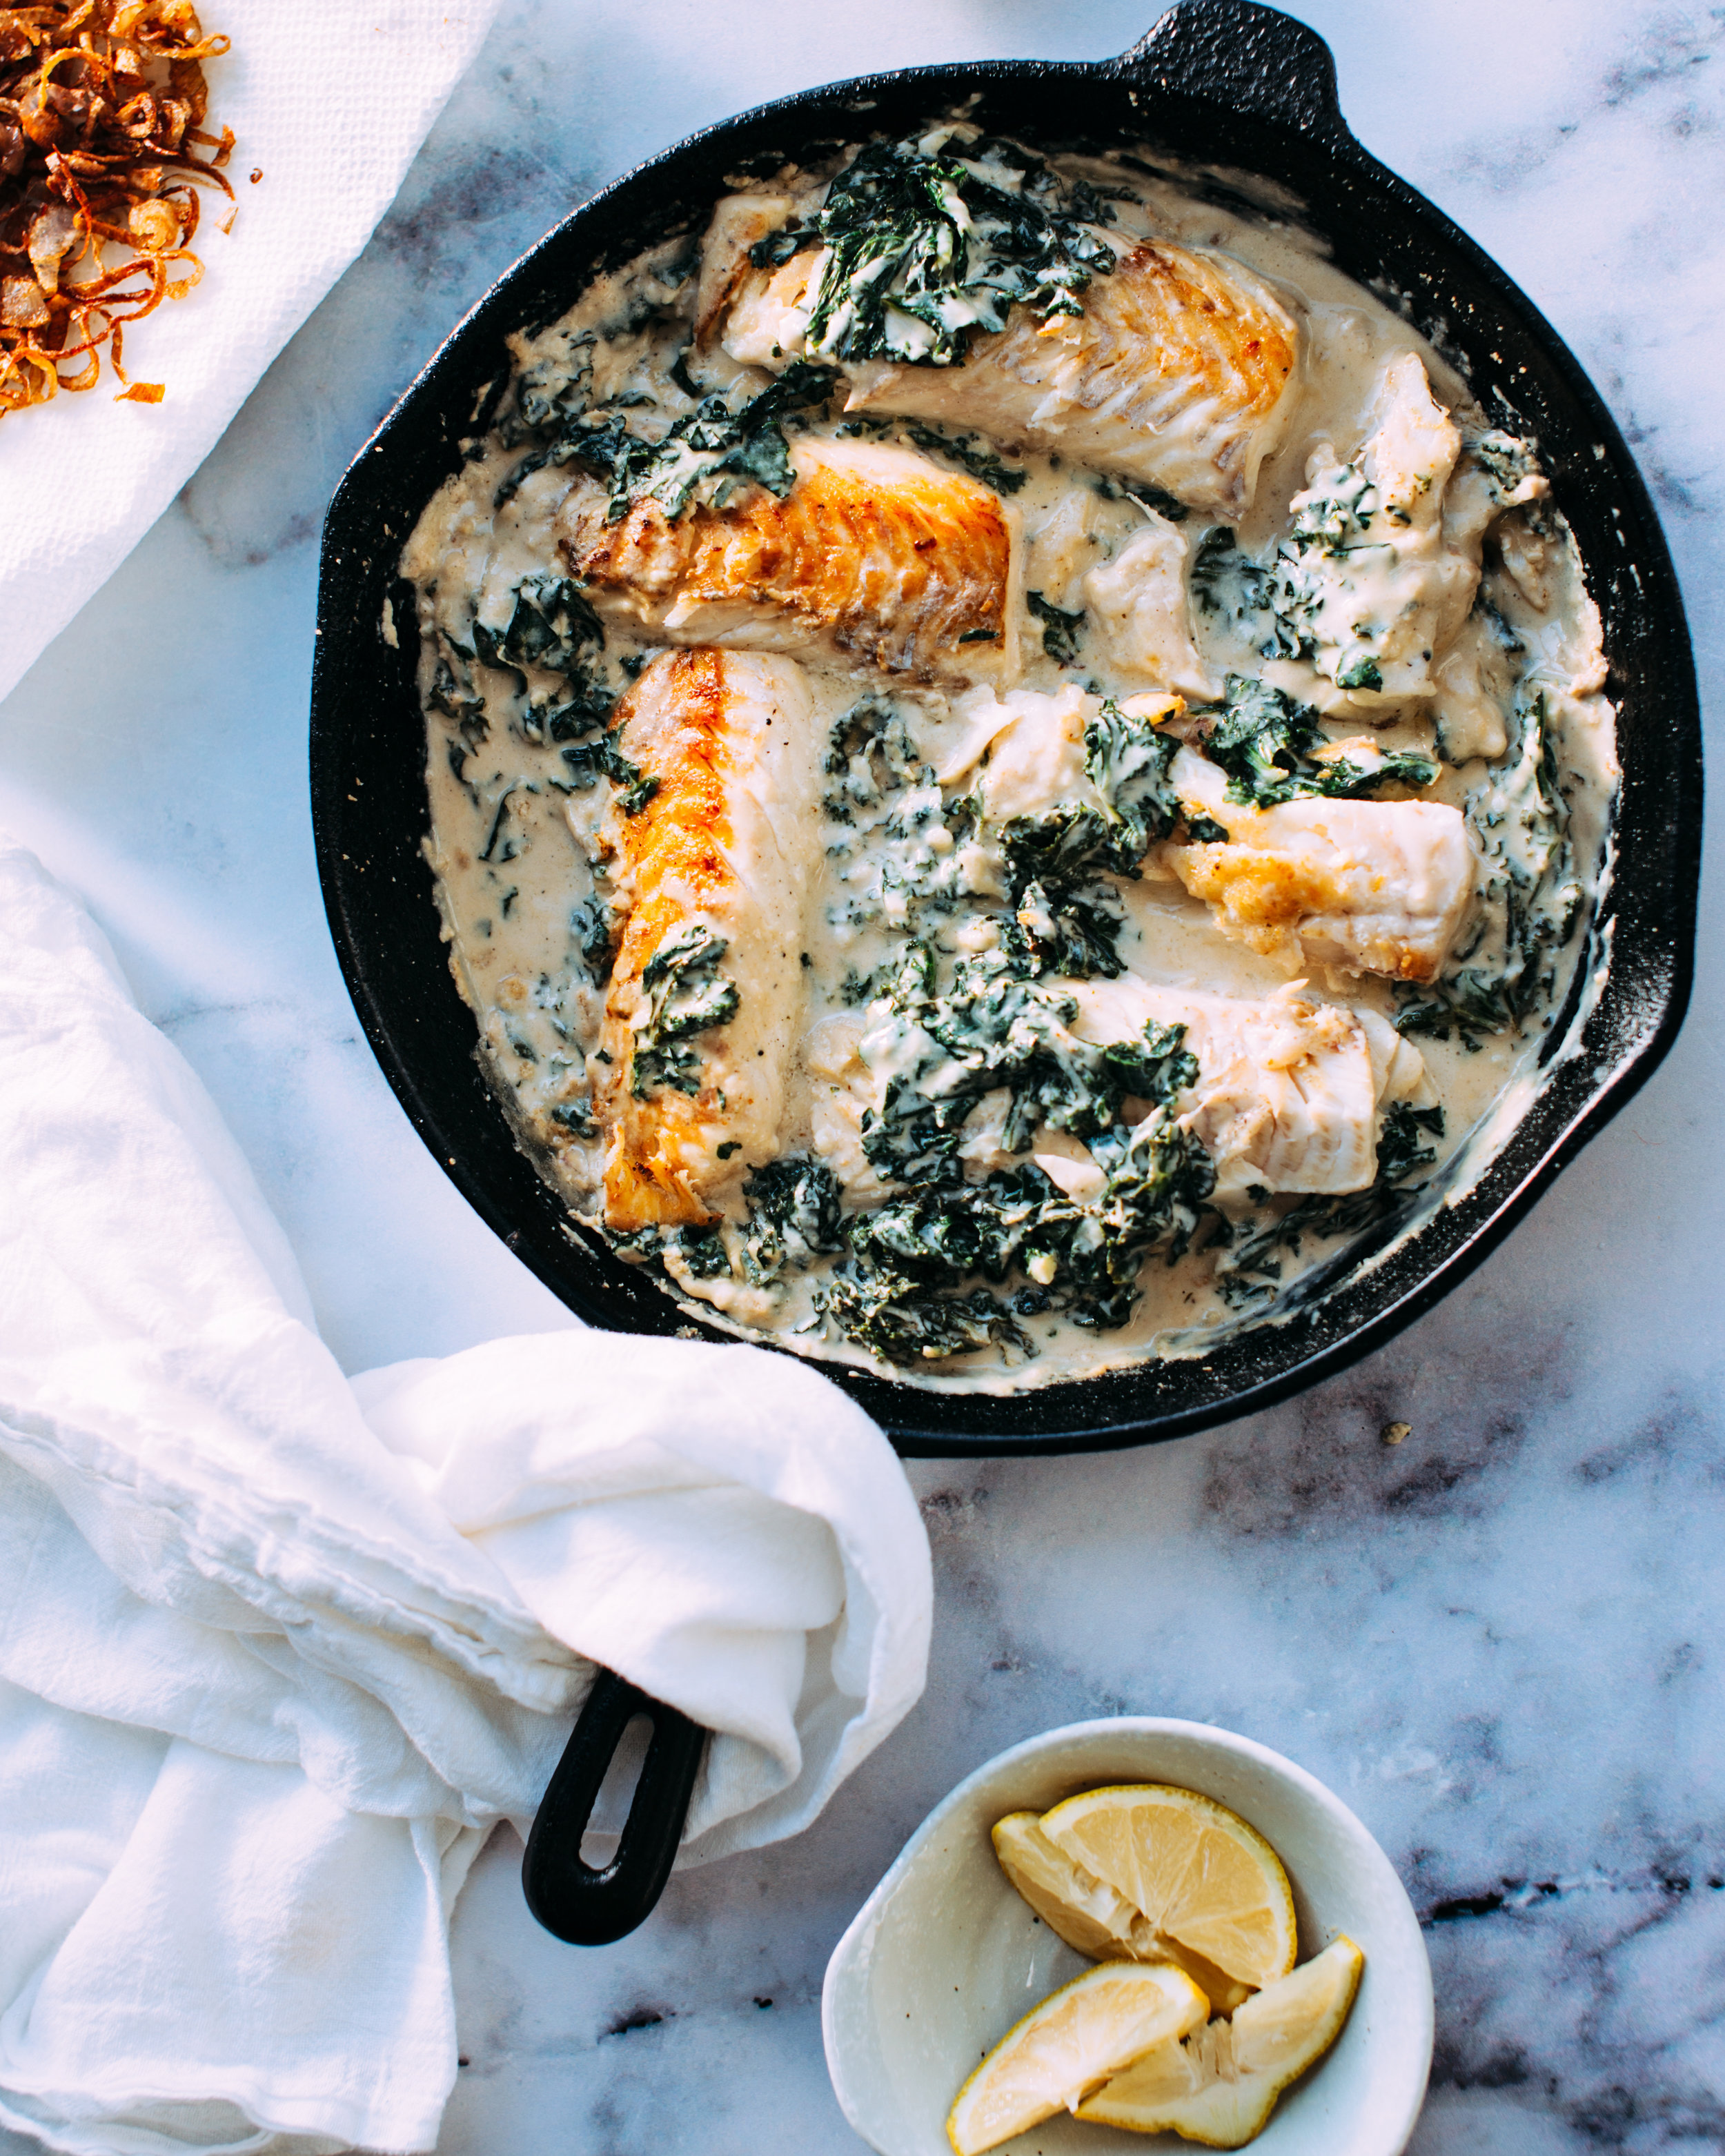 Pan fried catch of the day with creamed spinach